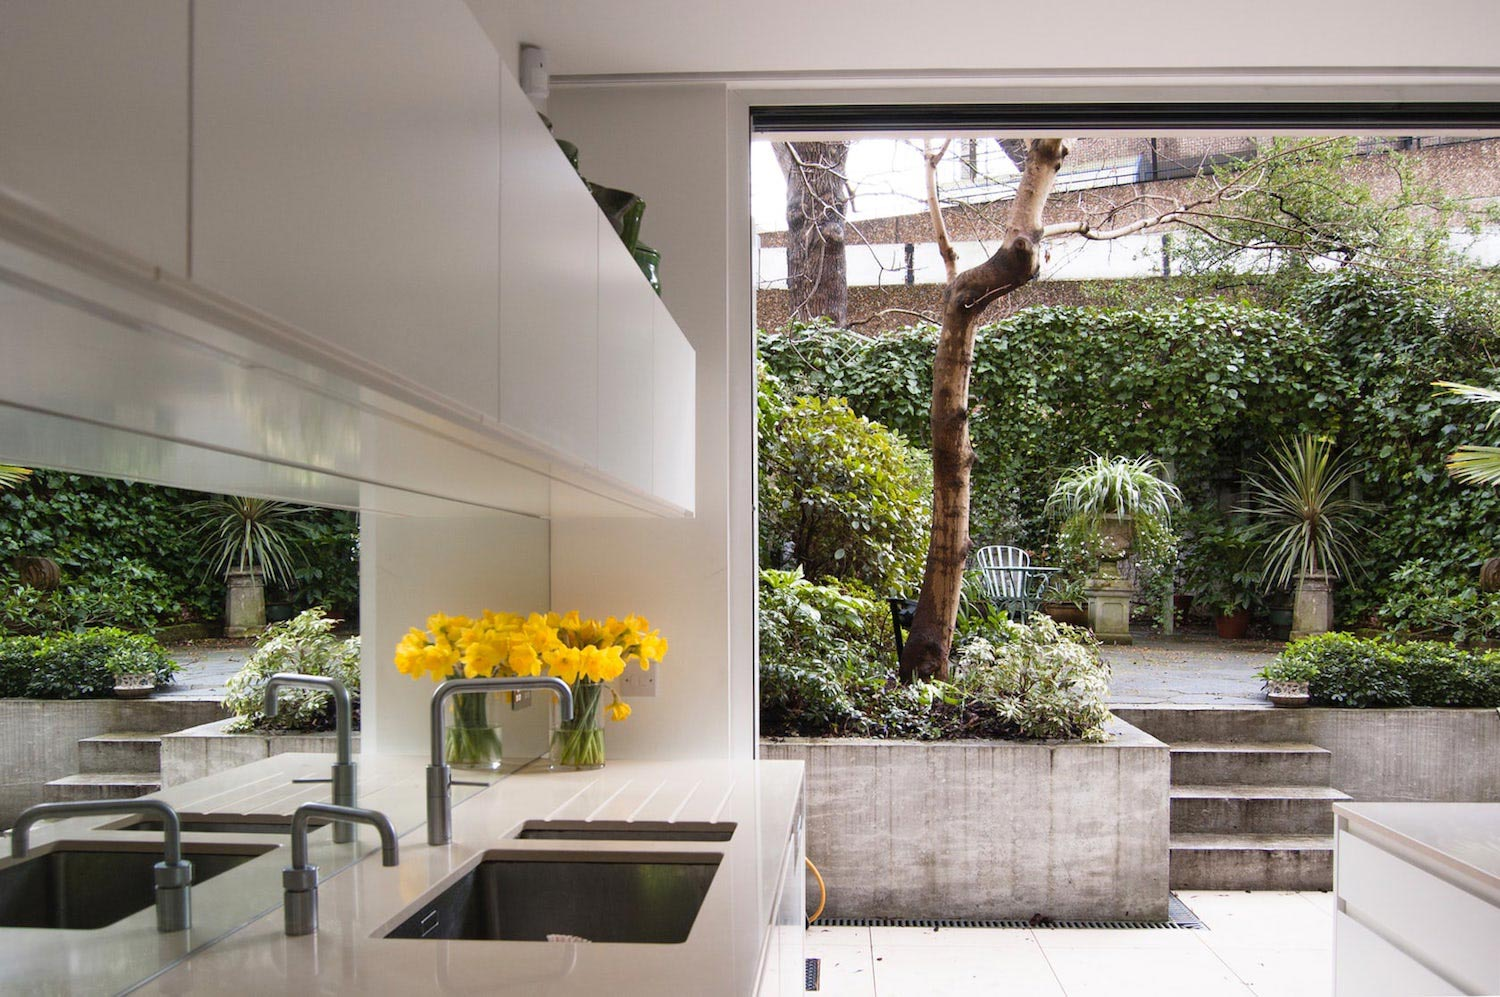 modern alteration to a victorian era italianate style terrace modern alteration to a victorian era italianate style terrace house in london caandesign architecture and home design blog